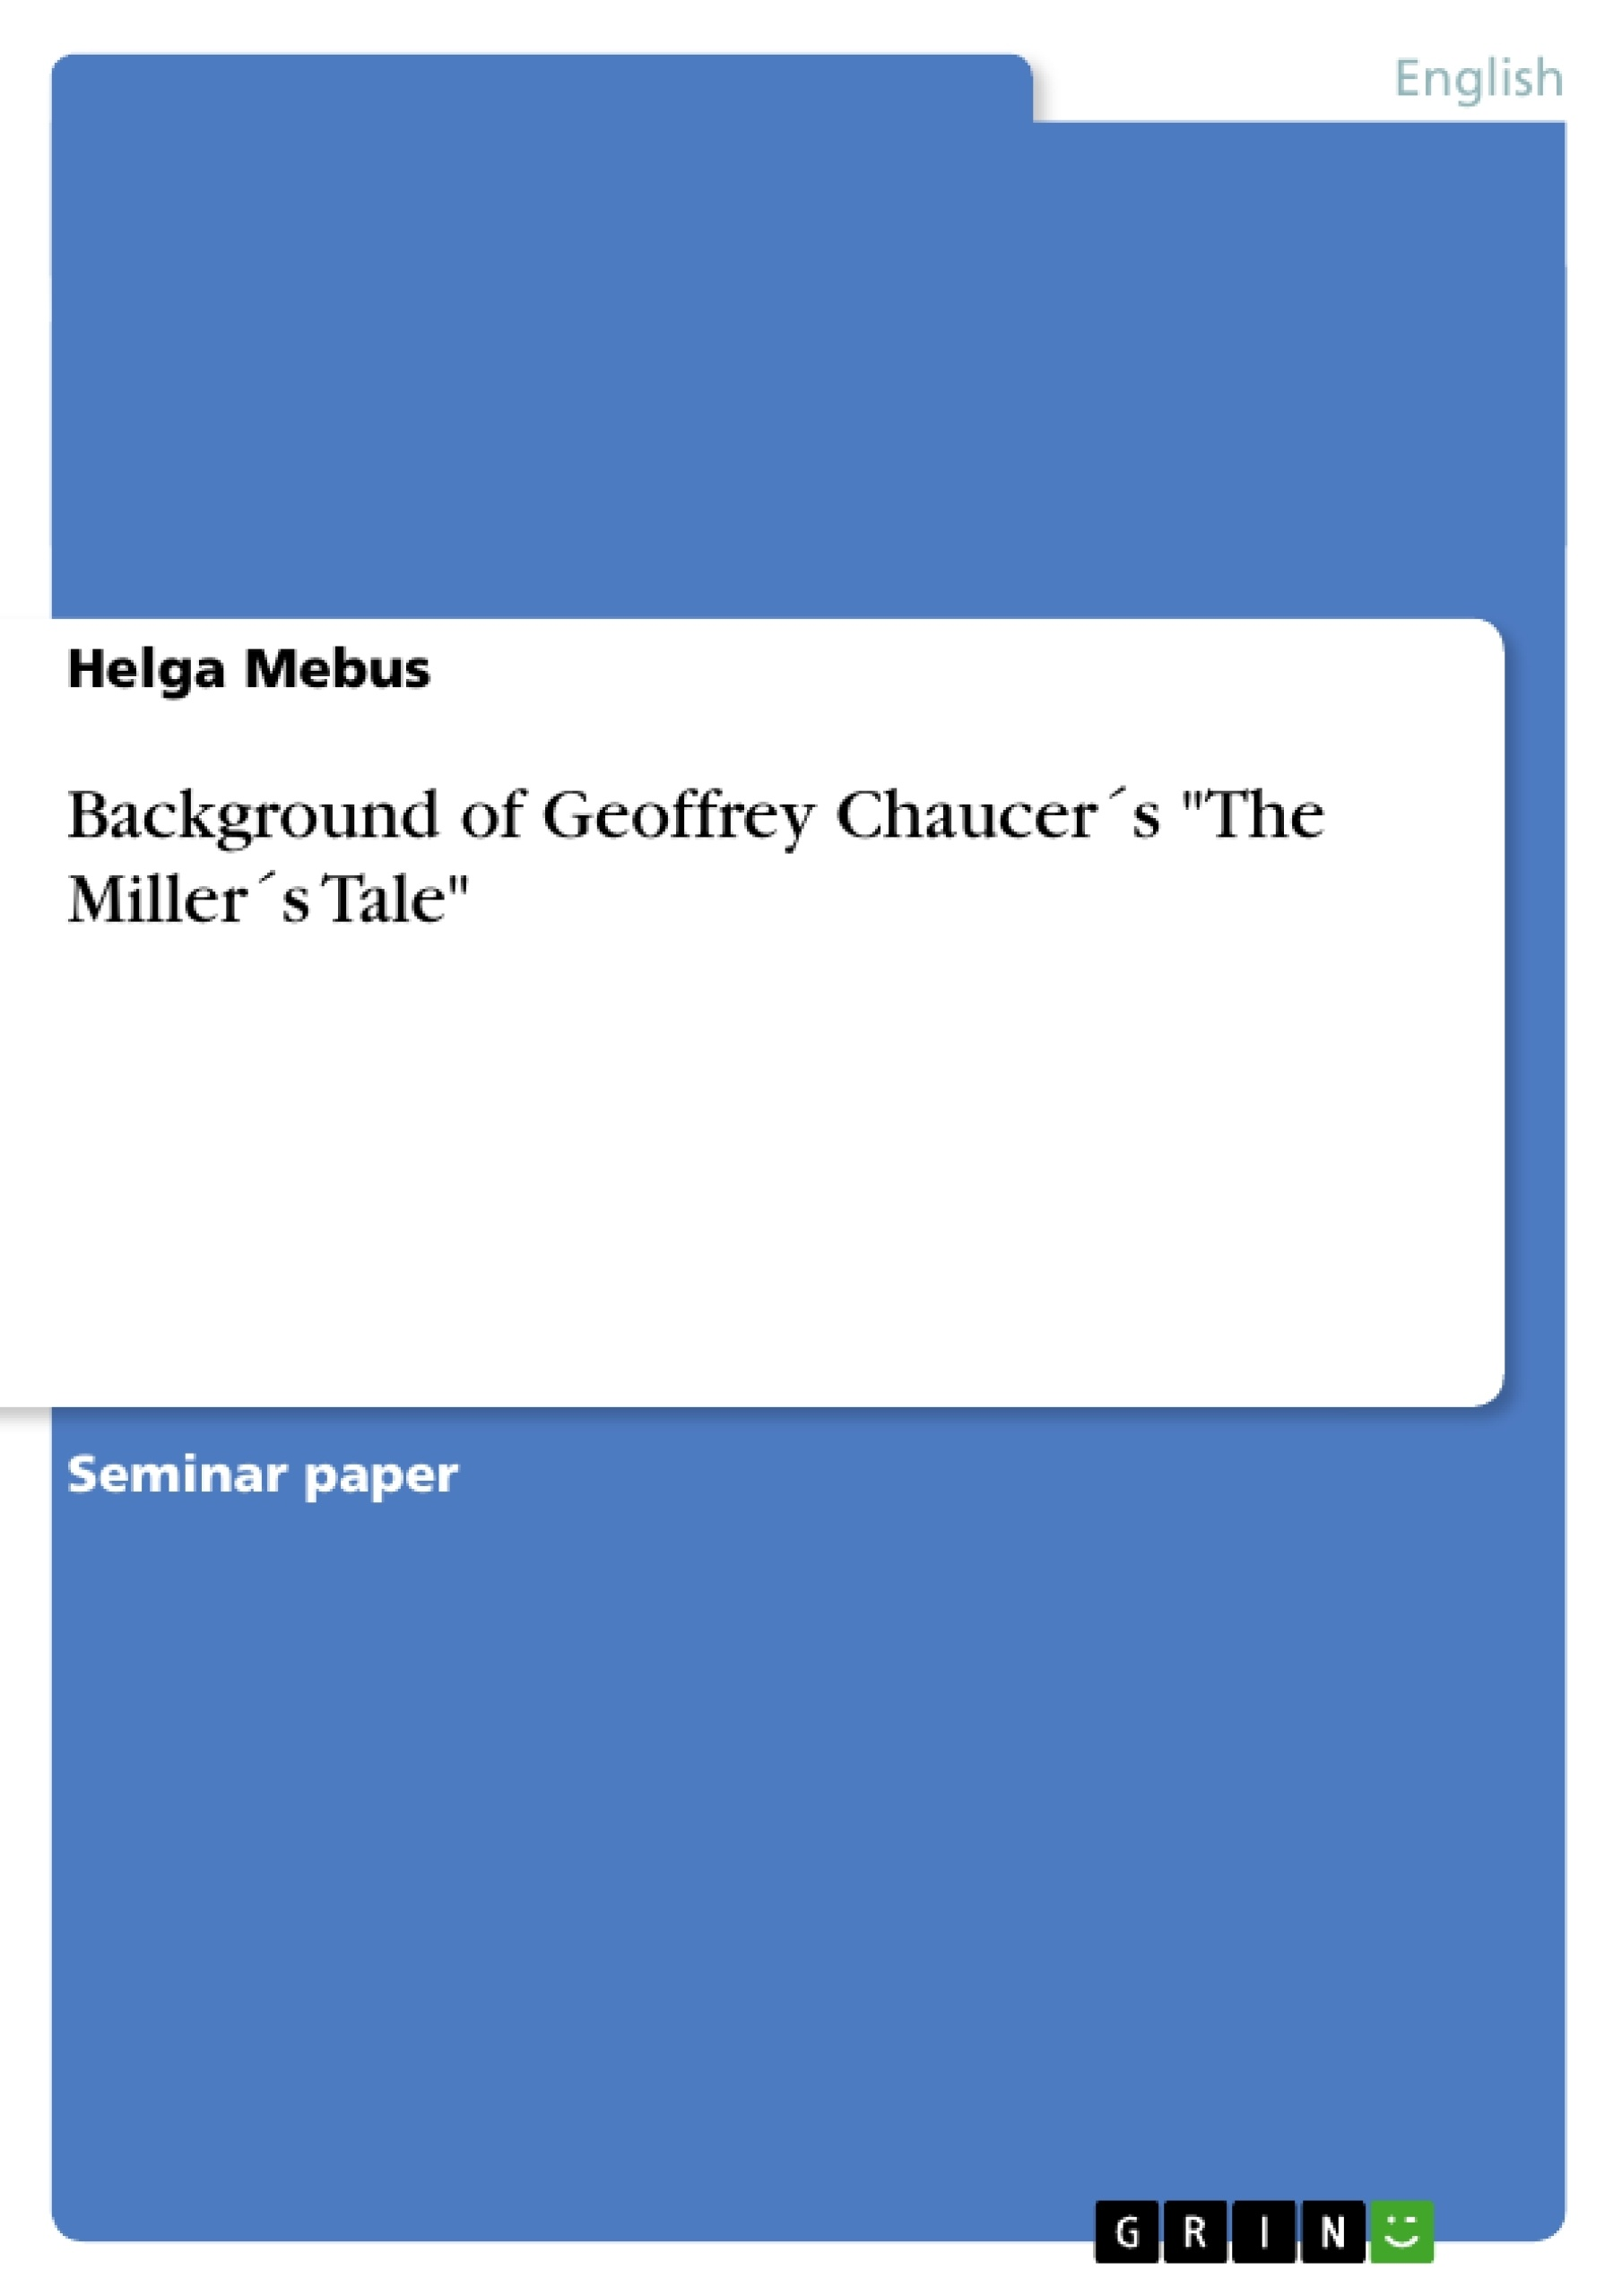 chaucers prologue to the canterbury tales essay Read and download geoffrey chaucer the general prologue to the canterbury tales essays articles reviews free ebooks in pdf format - cummins ism engine troubleshooting.